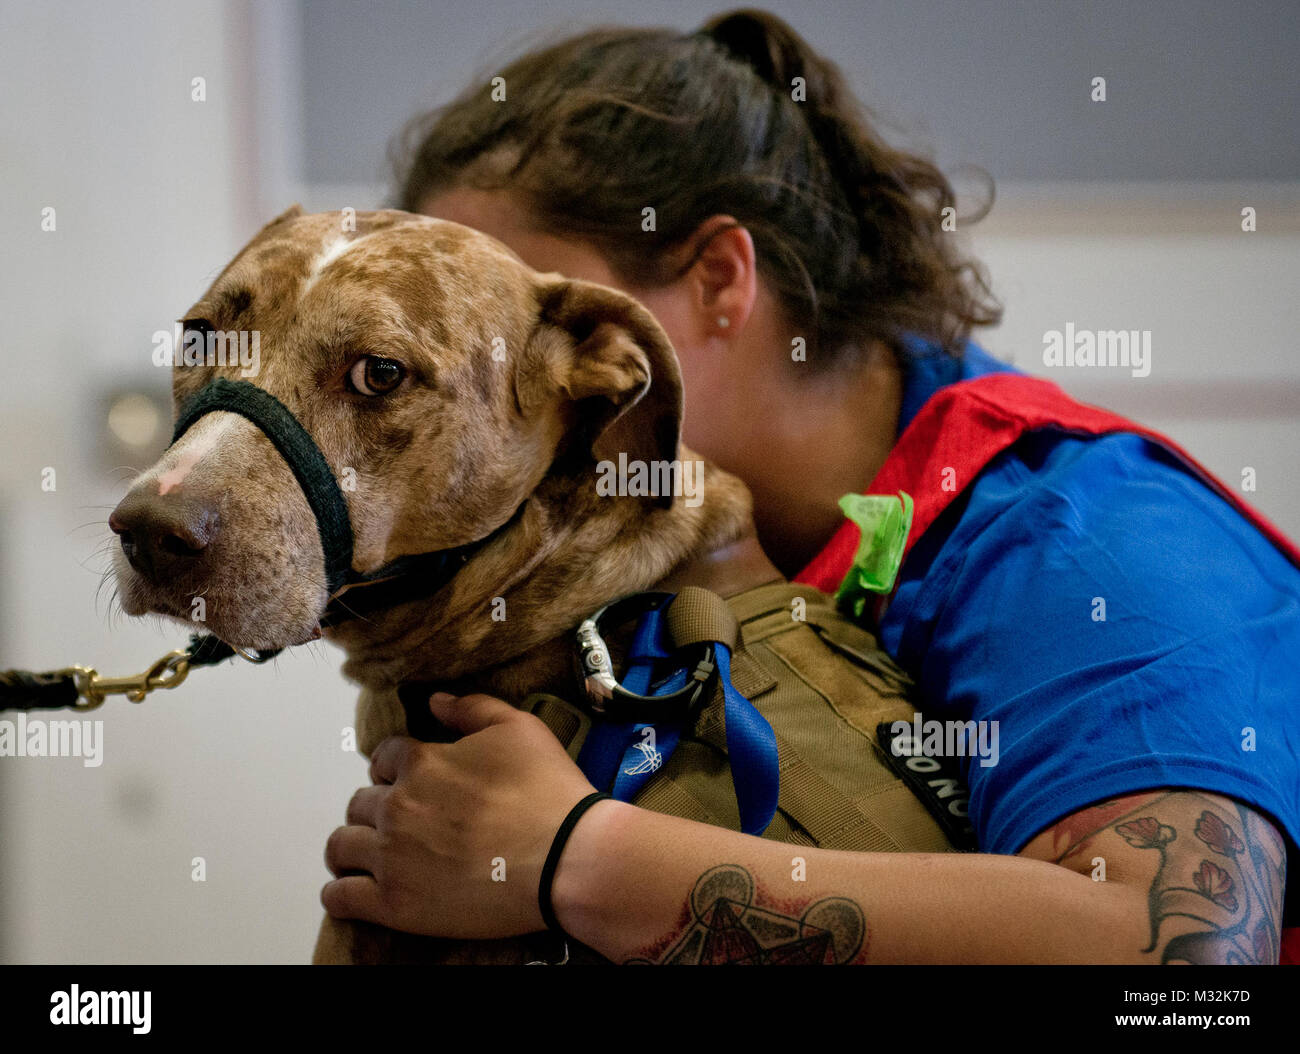 Valhalla, a service dog, protects his owner, Hanna Stulberg, a Warrior Care athlete, during the adaptive sports - Stock Image